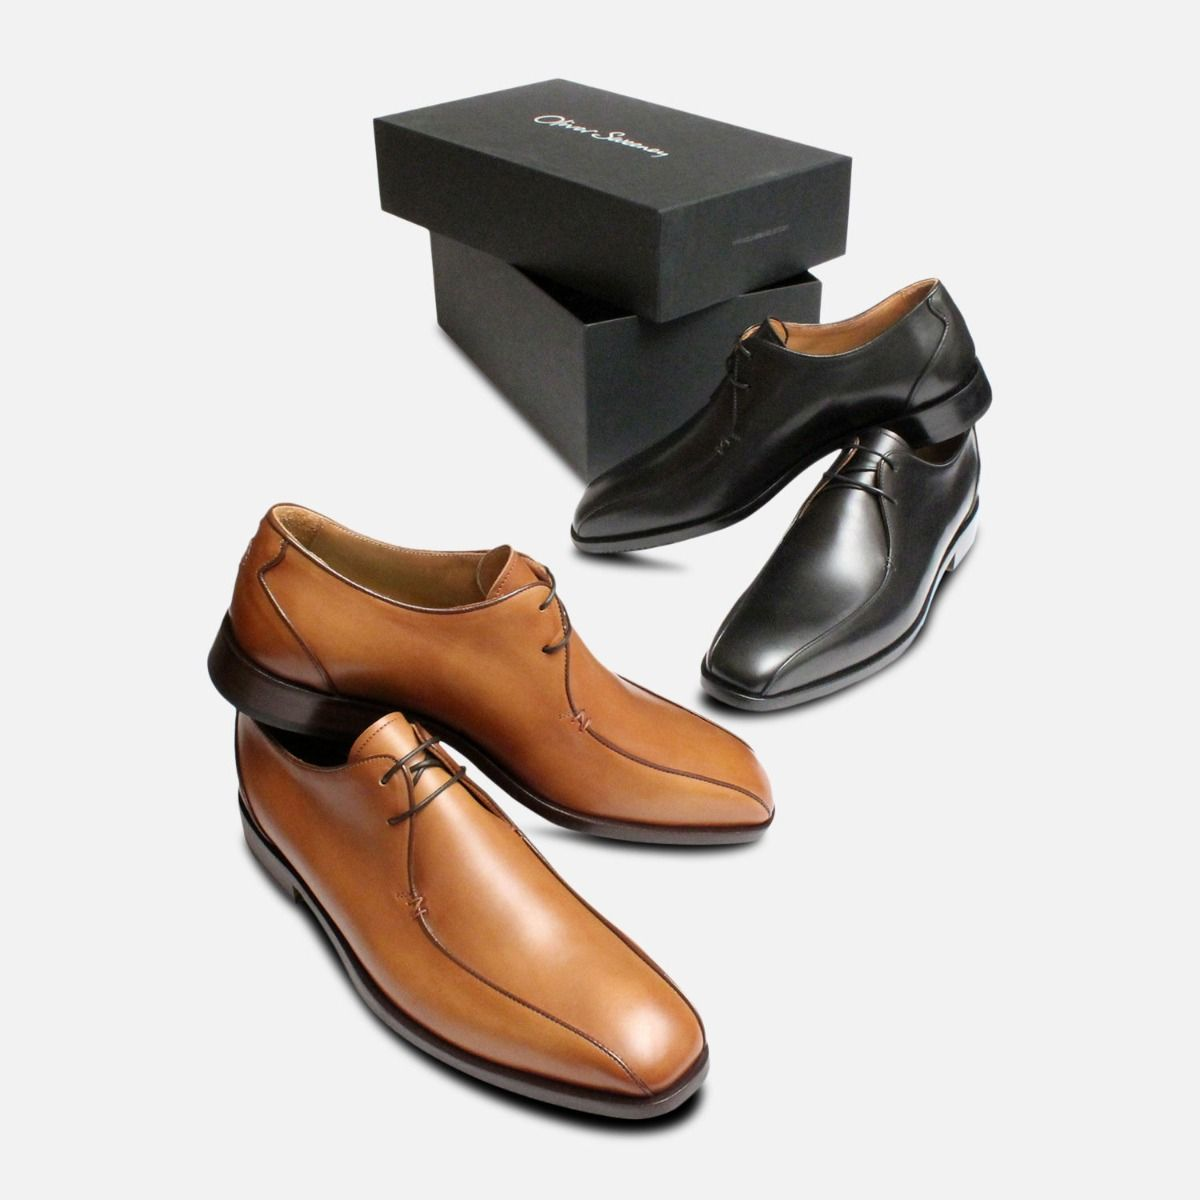 Brown Italian Shoes by Oliver Sweeney Sapri in Tan